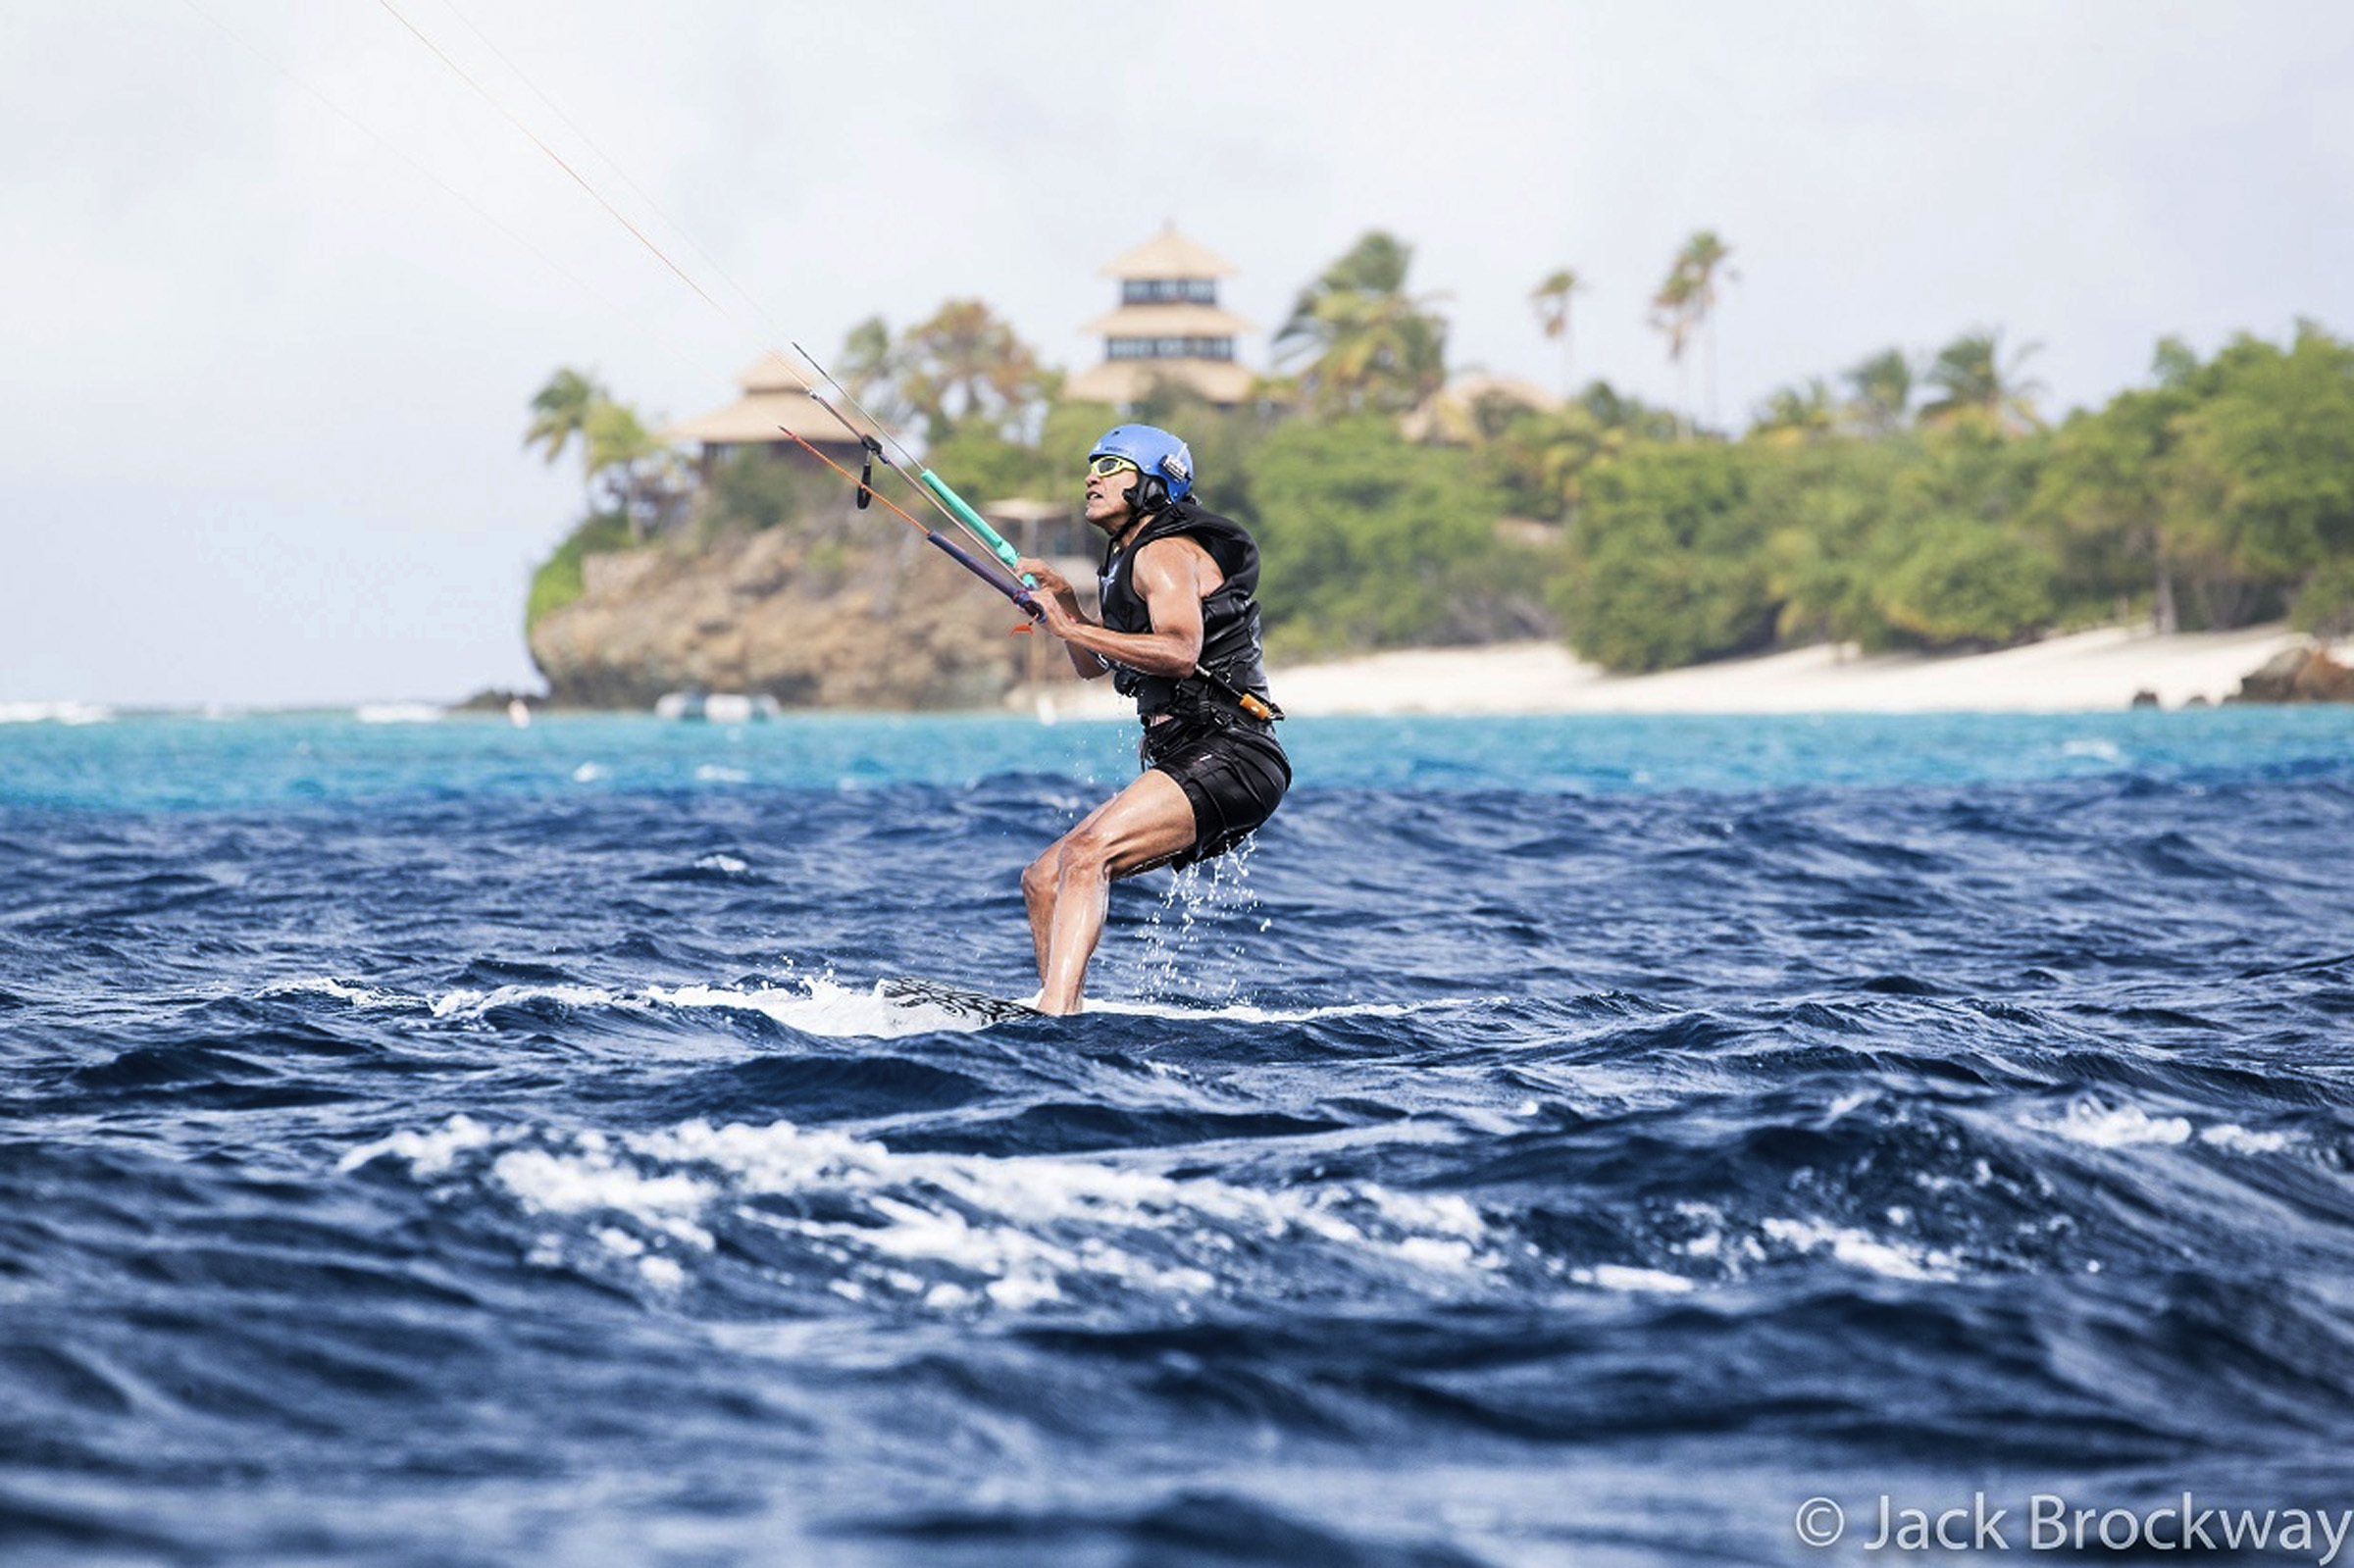 In this recent but undated photo made available by Virgin.com, former U.S President Barack Obama kitesurfs during his stay on Moskito Island, British Virgin Islands. The former president and his wife stayed on Mosikto Island owned by Richard Branson, founder of the Virgin Group, after he finished his second term as President and left the White House. (Jack Brockway/Virgin.com via AP)